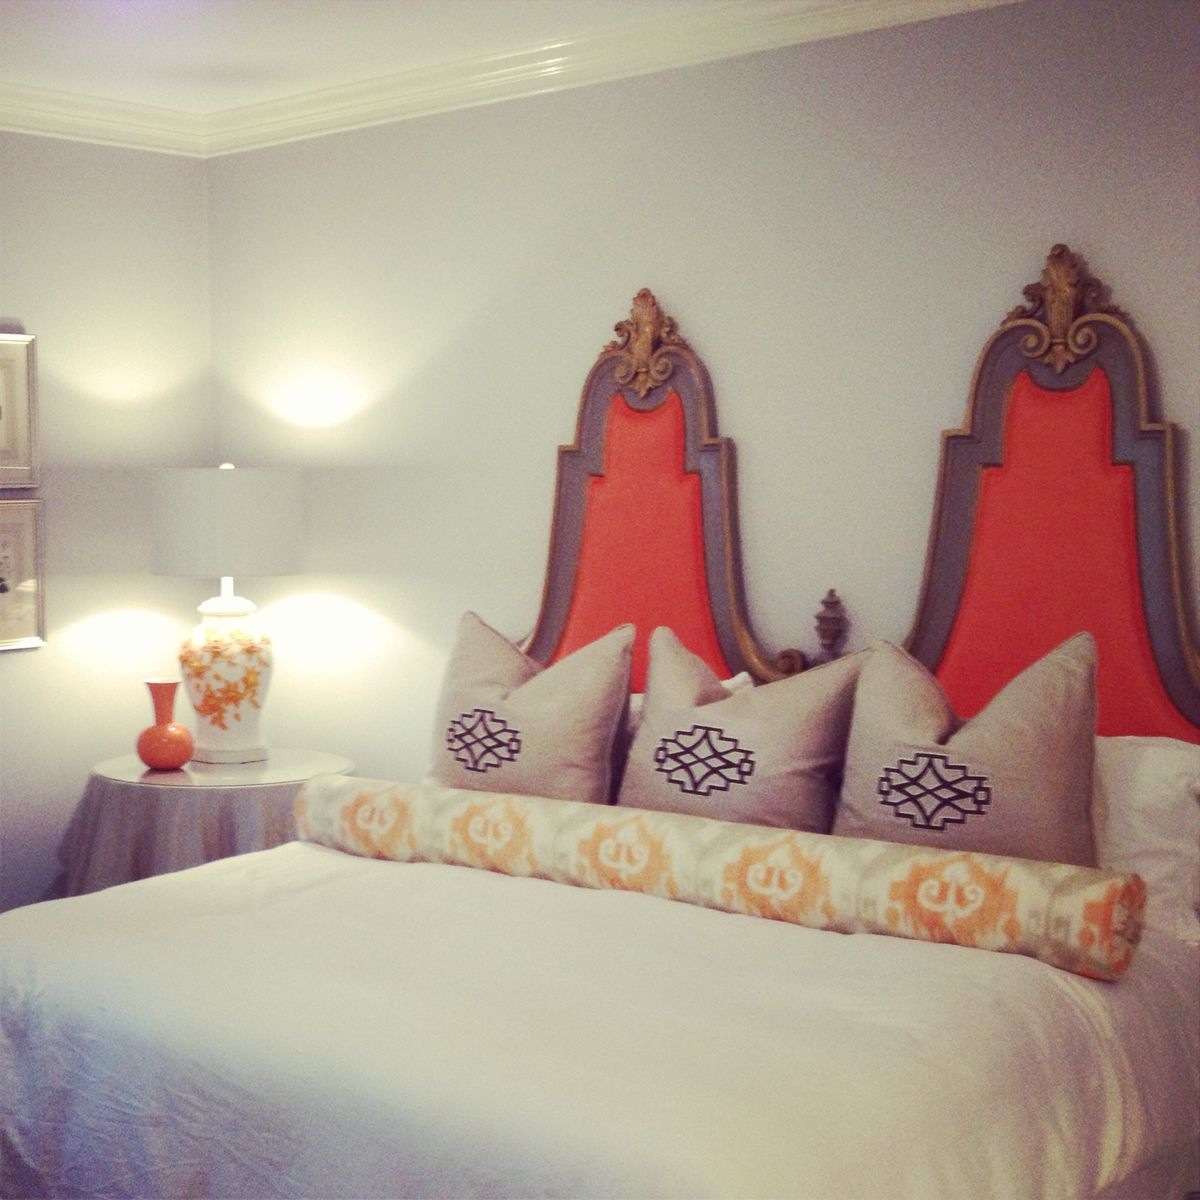 The personable headboard makes this space